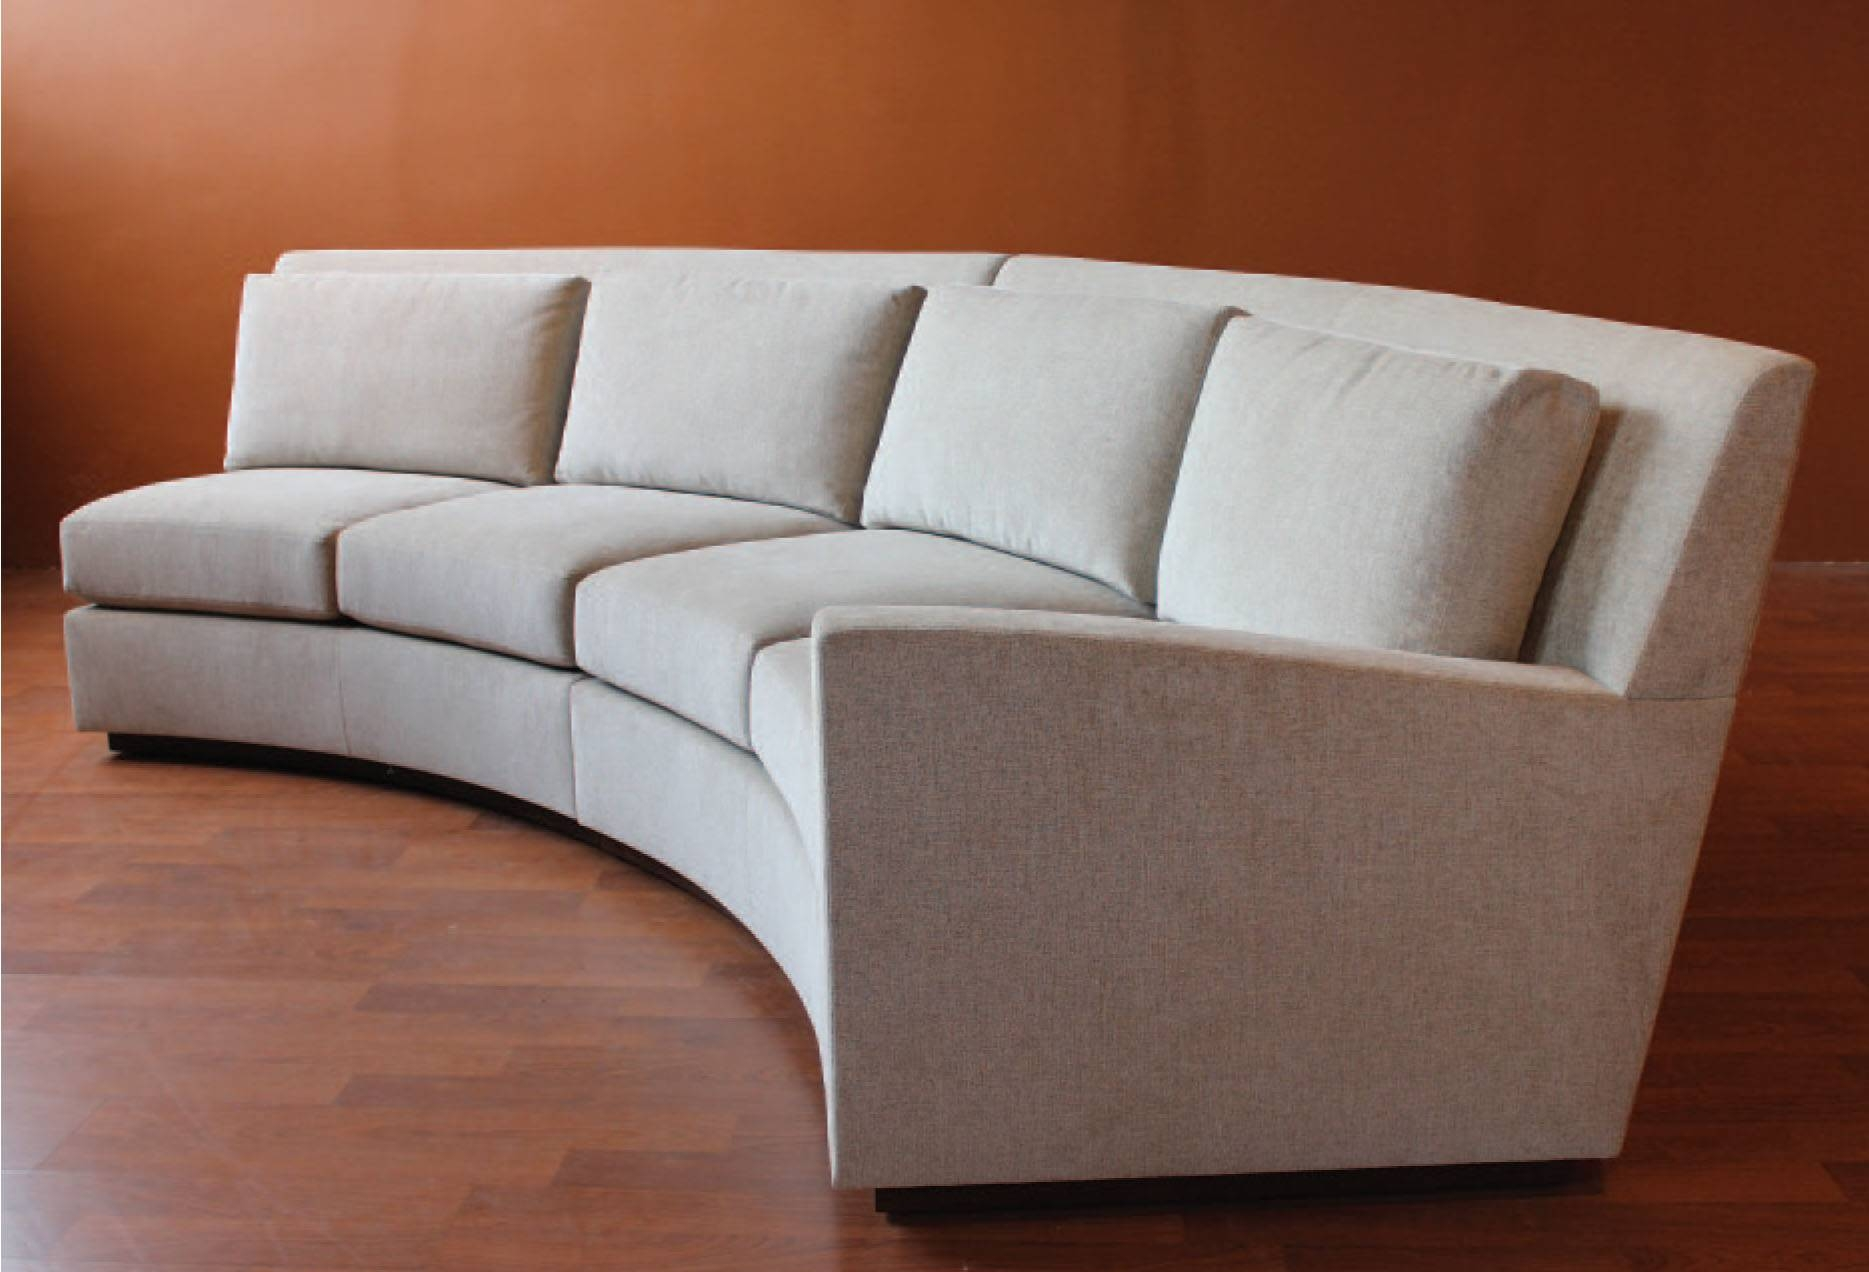 Sofa: Cool Couches For Provides A Warm To Comfortable Feel And Low with Circular Sectional Sofa (Image 26 of 30)